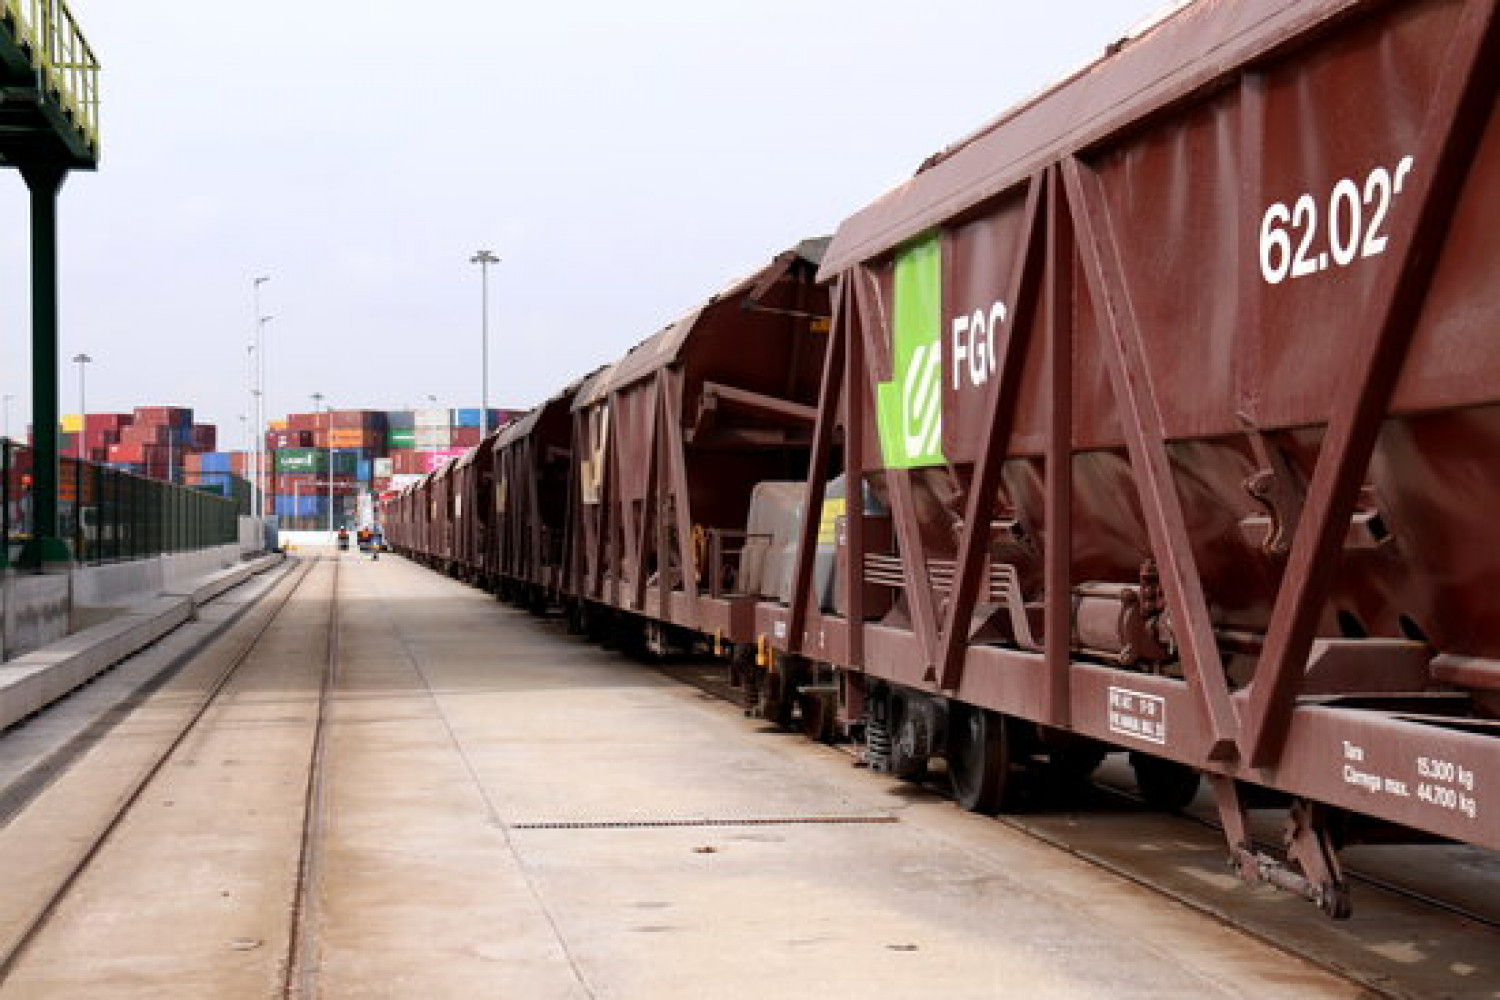 Image of the railway by FGC company in Barcelona's port on March 3, 2021 (by Aina Martí)